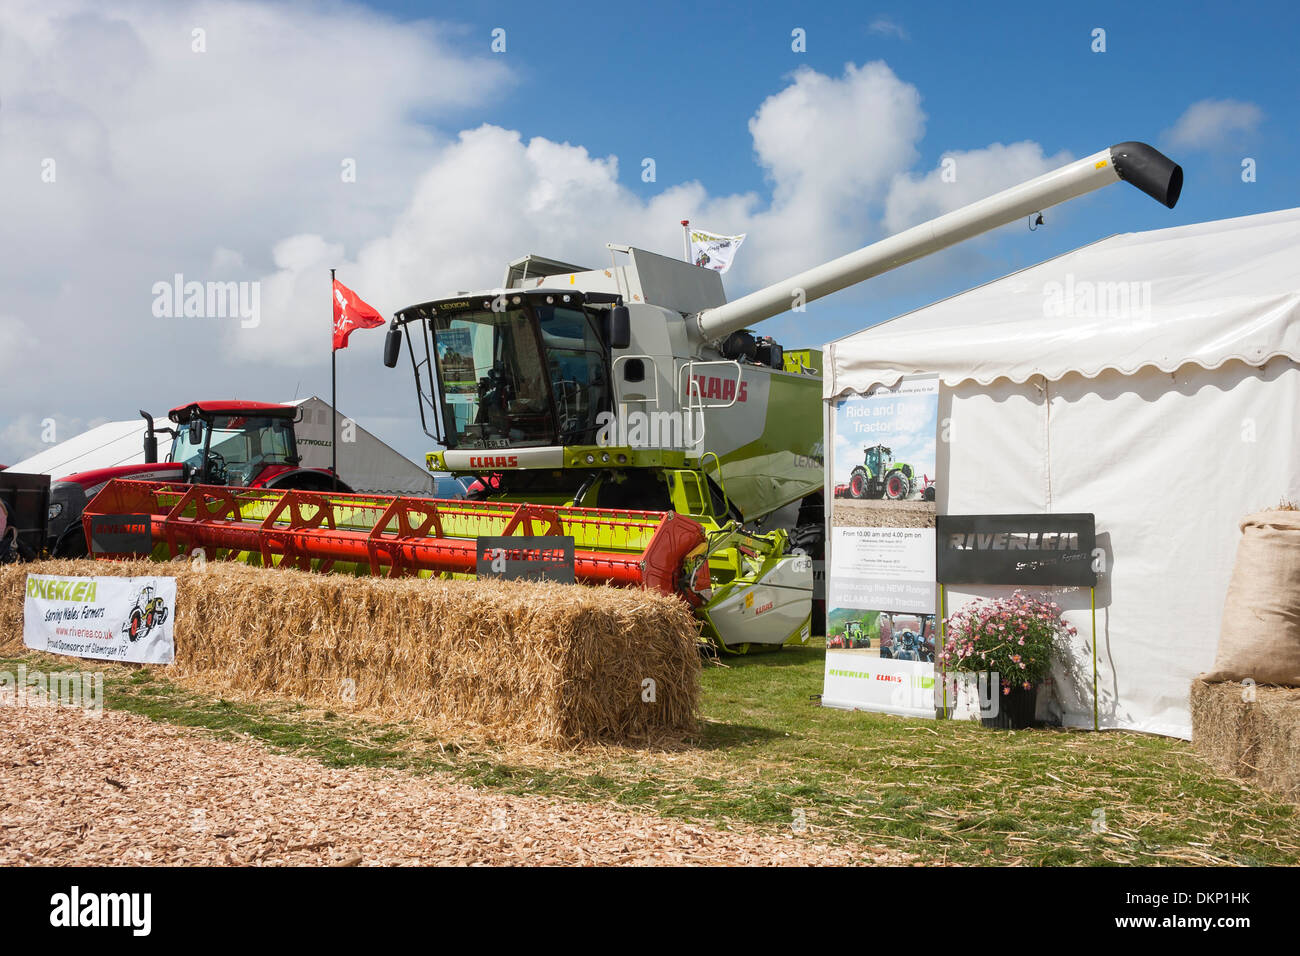 Combine harvester on display at agricultural showground - Stock Image